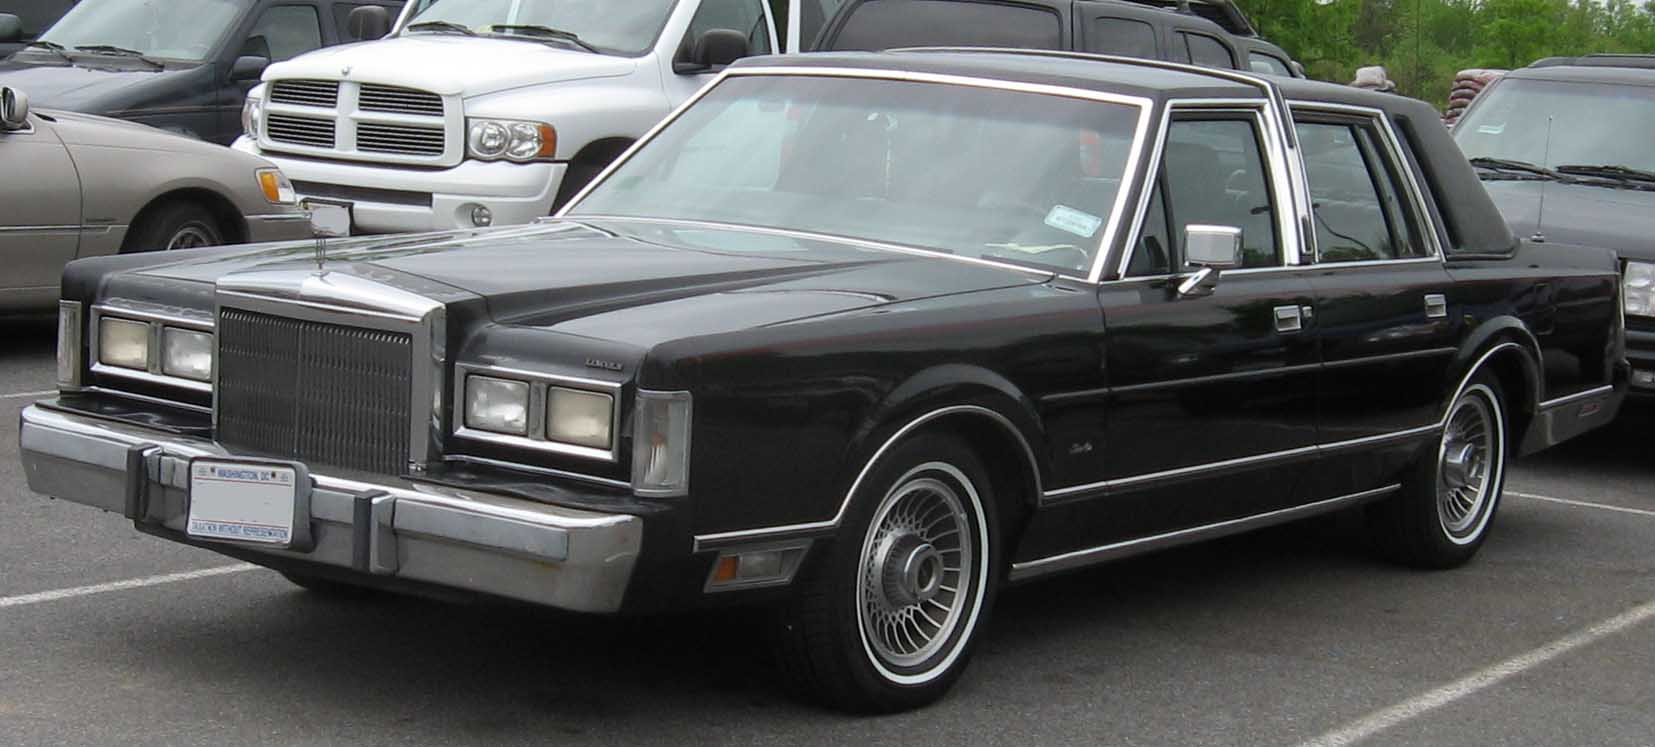 lincoln town car mafia wiki fandom powered by wikia rh mafia wikia com 1995 Lincoln Town Car 1984 Lincoln Town Car